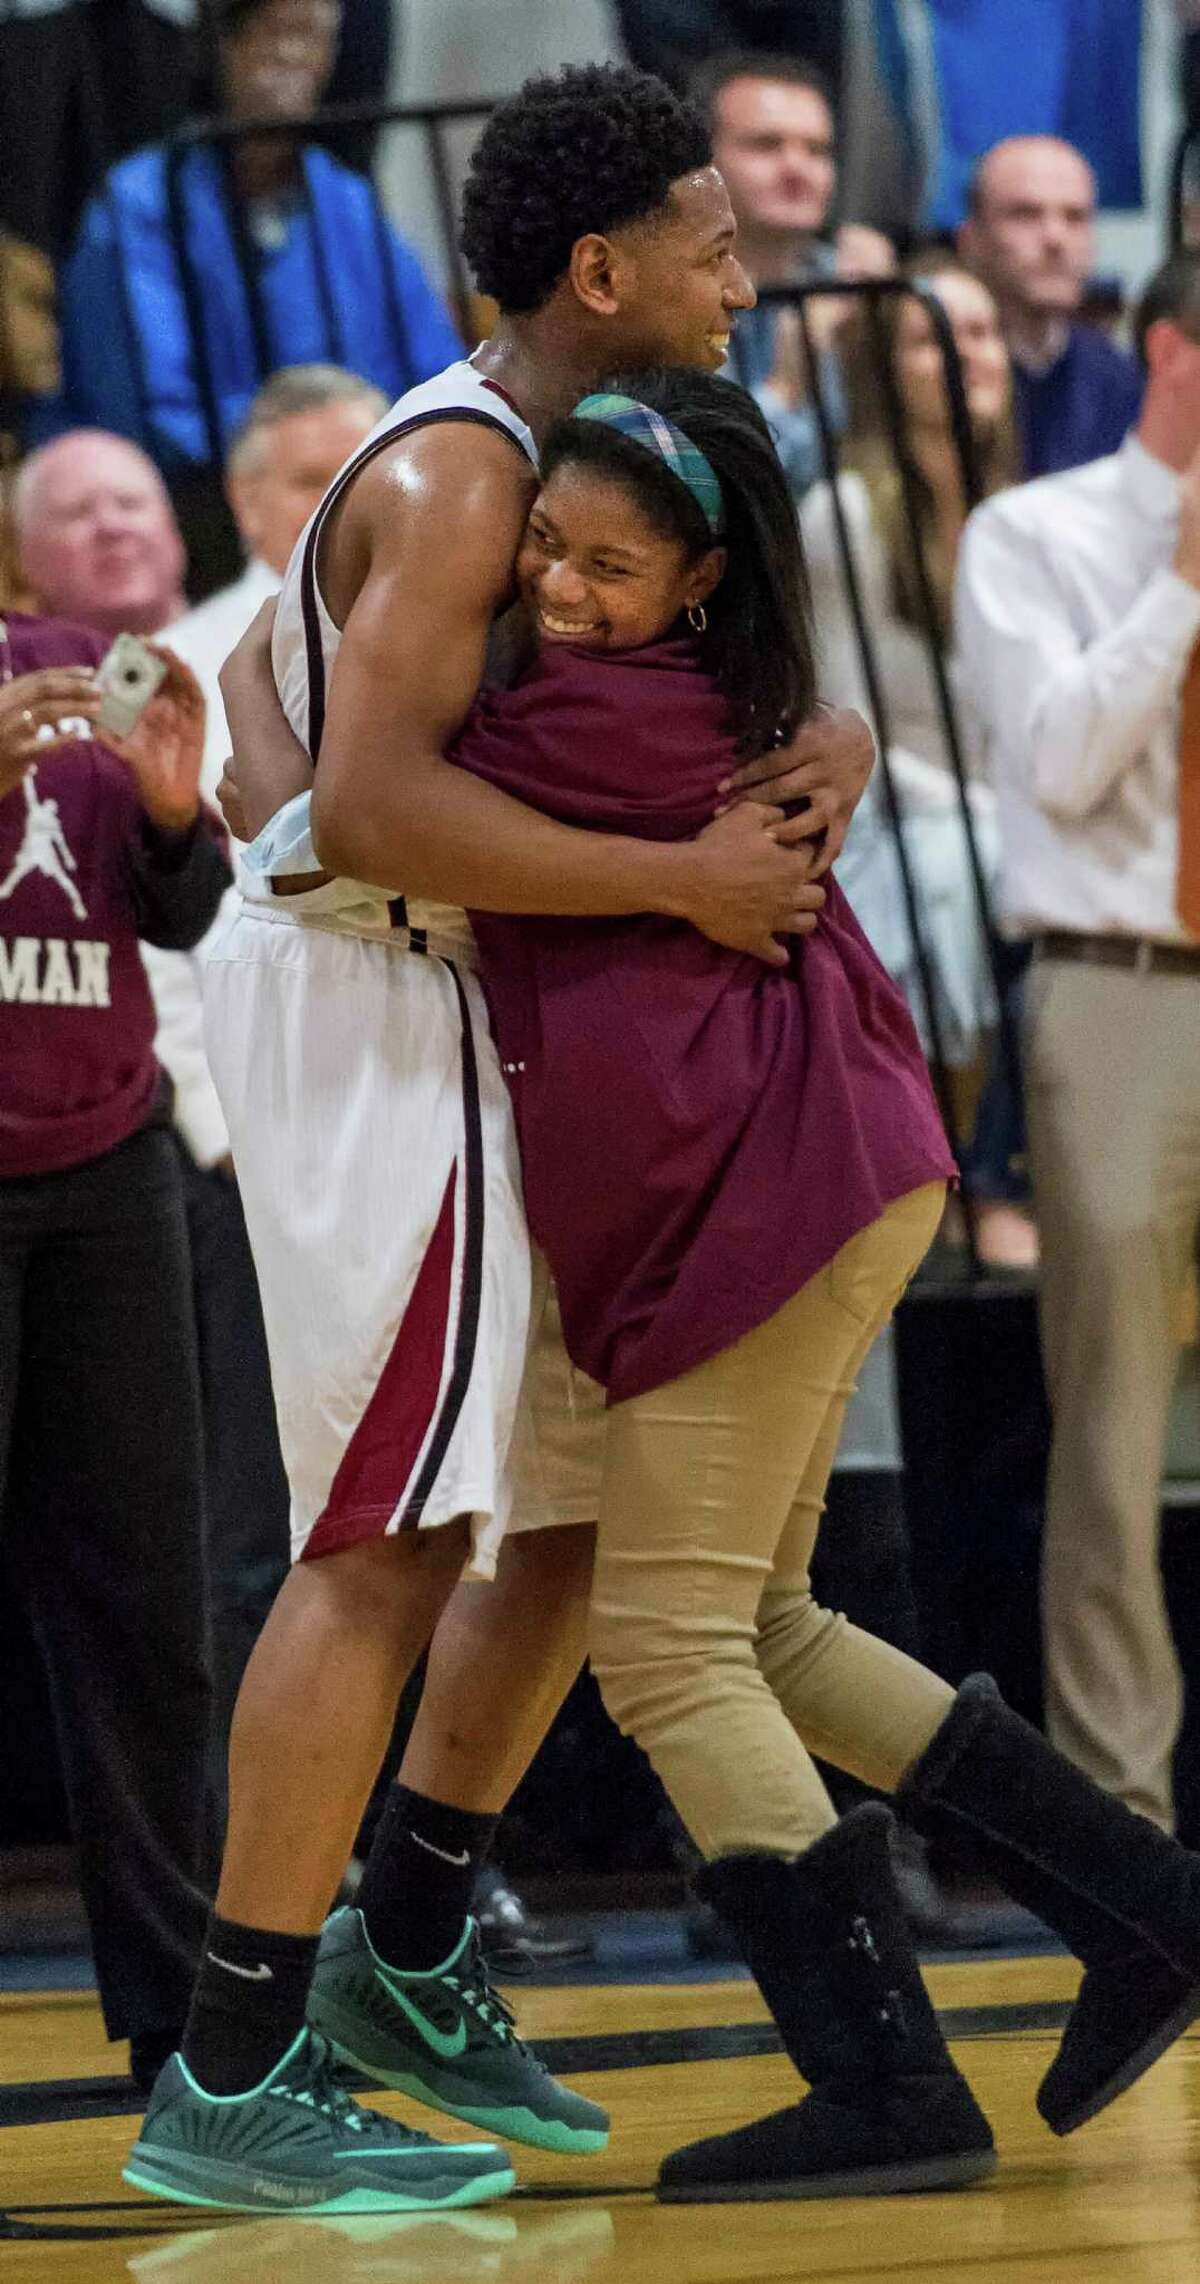 St Luke's School's Jalen Latta gets a hug from his sister, Jordan, after Jalen scored his 1,000th career point during Thursday's game against King School at the King School gym.